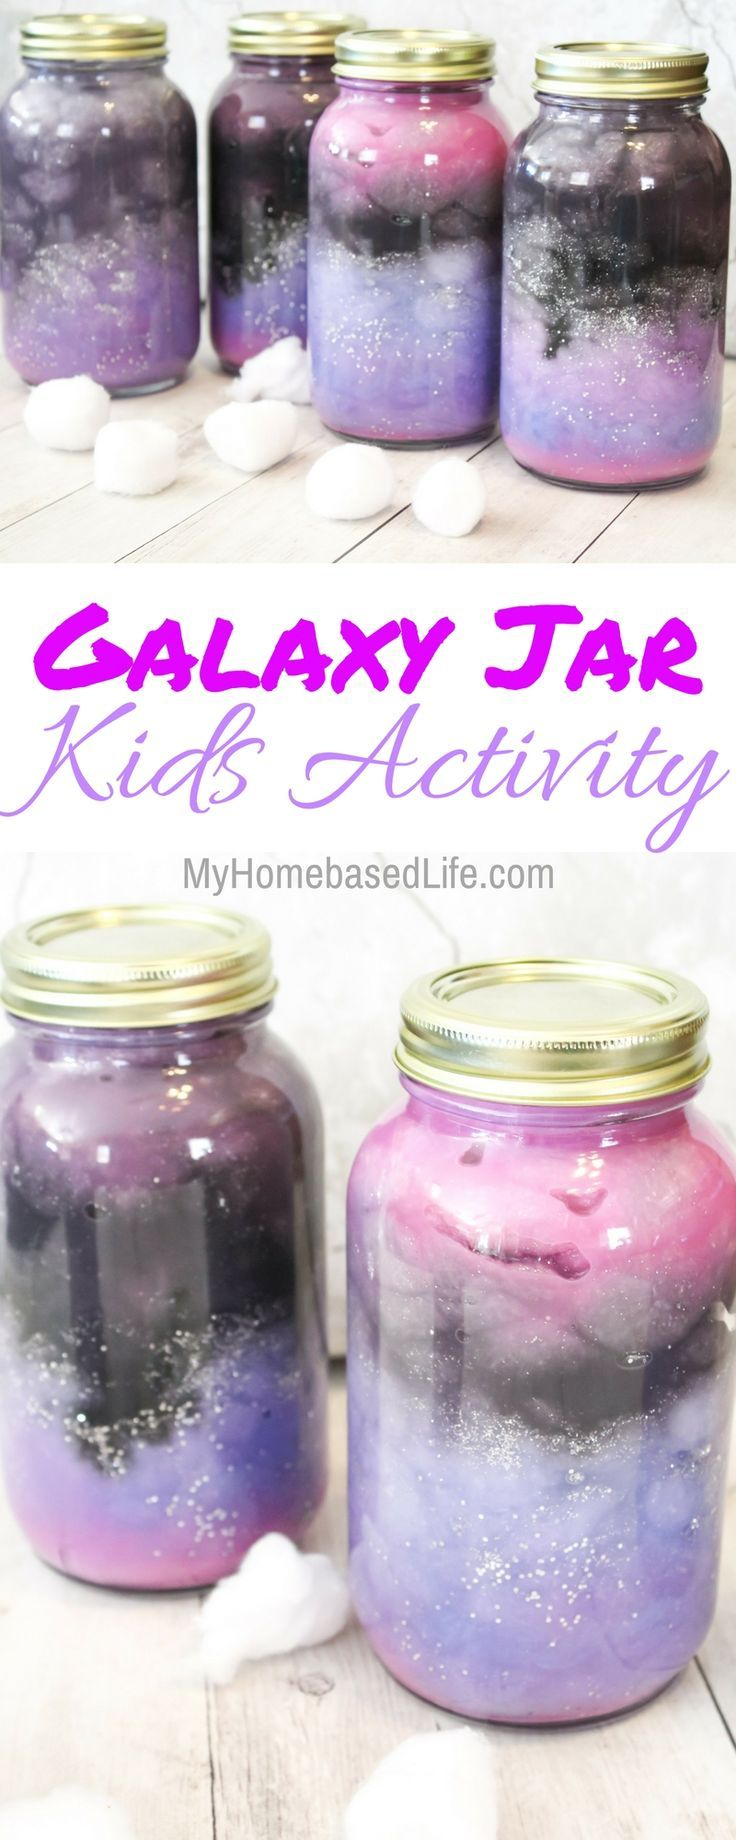 These Galaxy Jars are so simple and fun for the kids to create.  Let your child's creativity go wild on these and their masterpiece will be amazing!